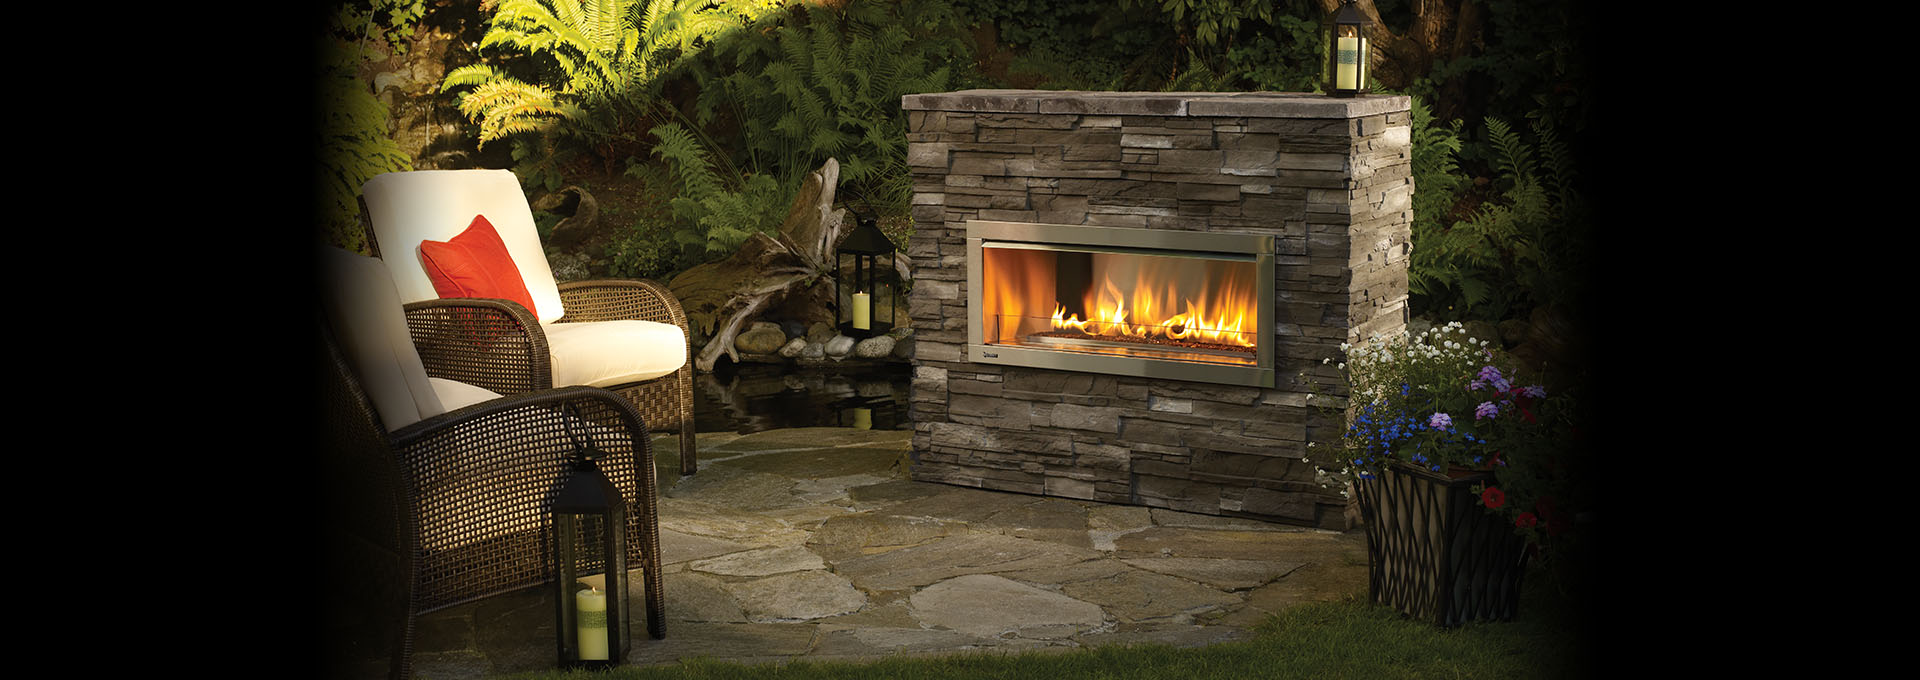 HZO42 Modern Outdoor Gas Fireplace - Outdoor Gas Fireplaces ...